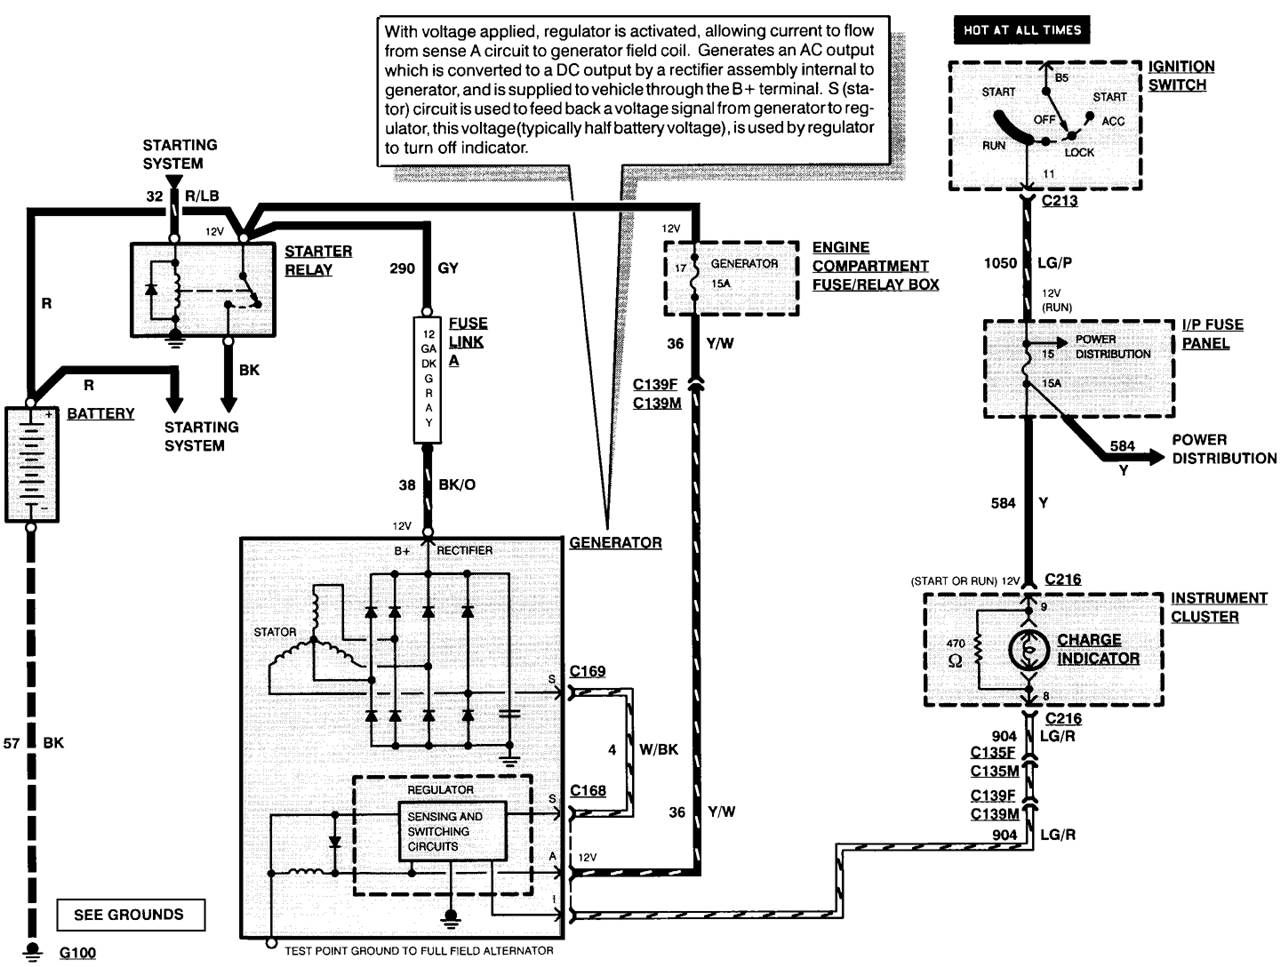 1972 Vw Beetle Voltage Regulator Wiring Diagram